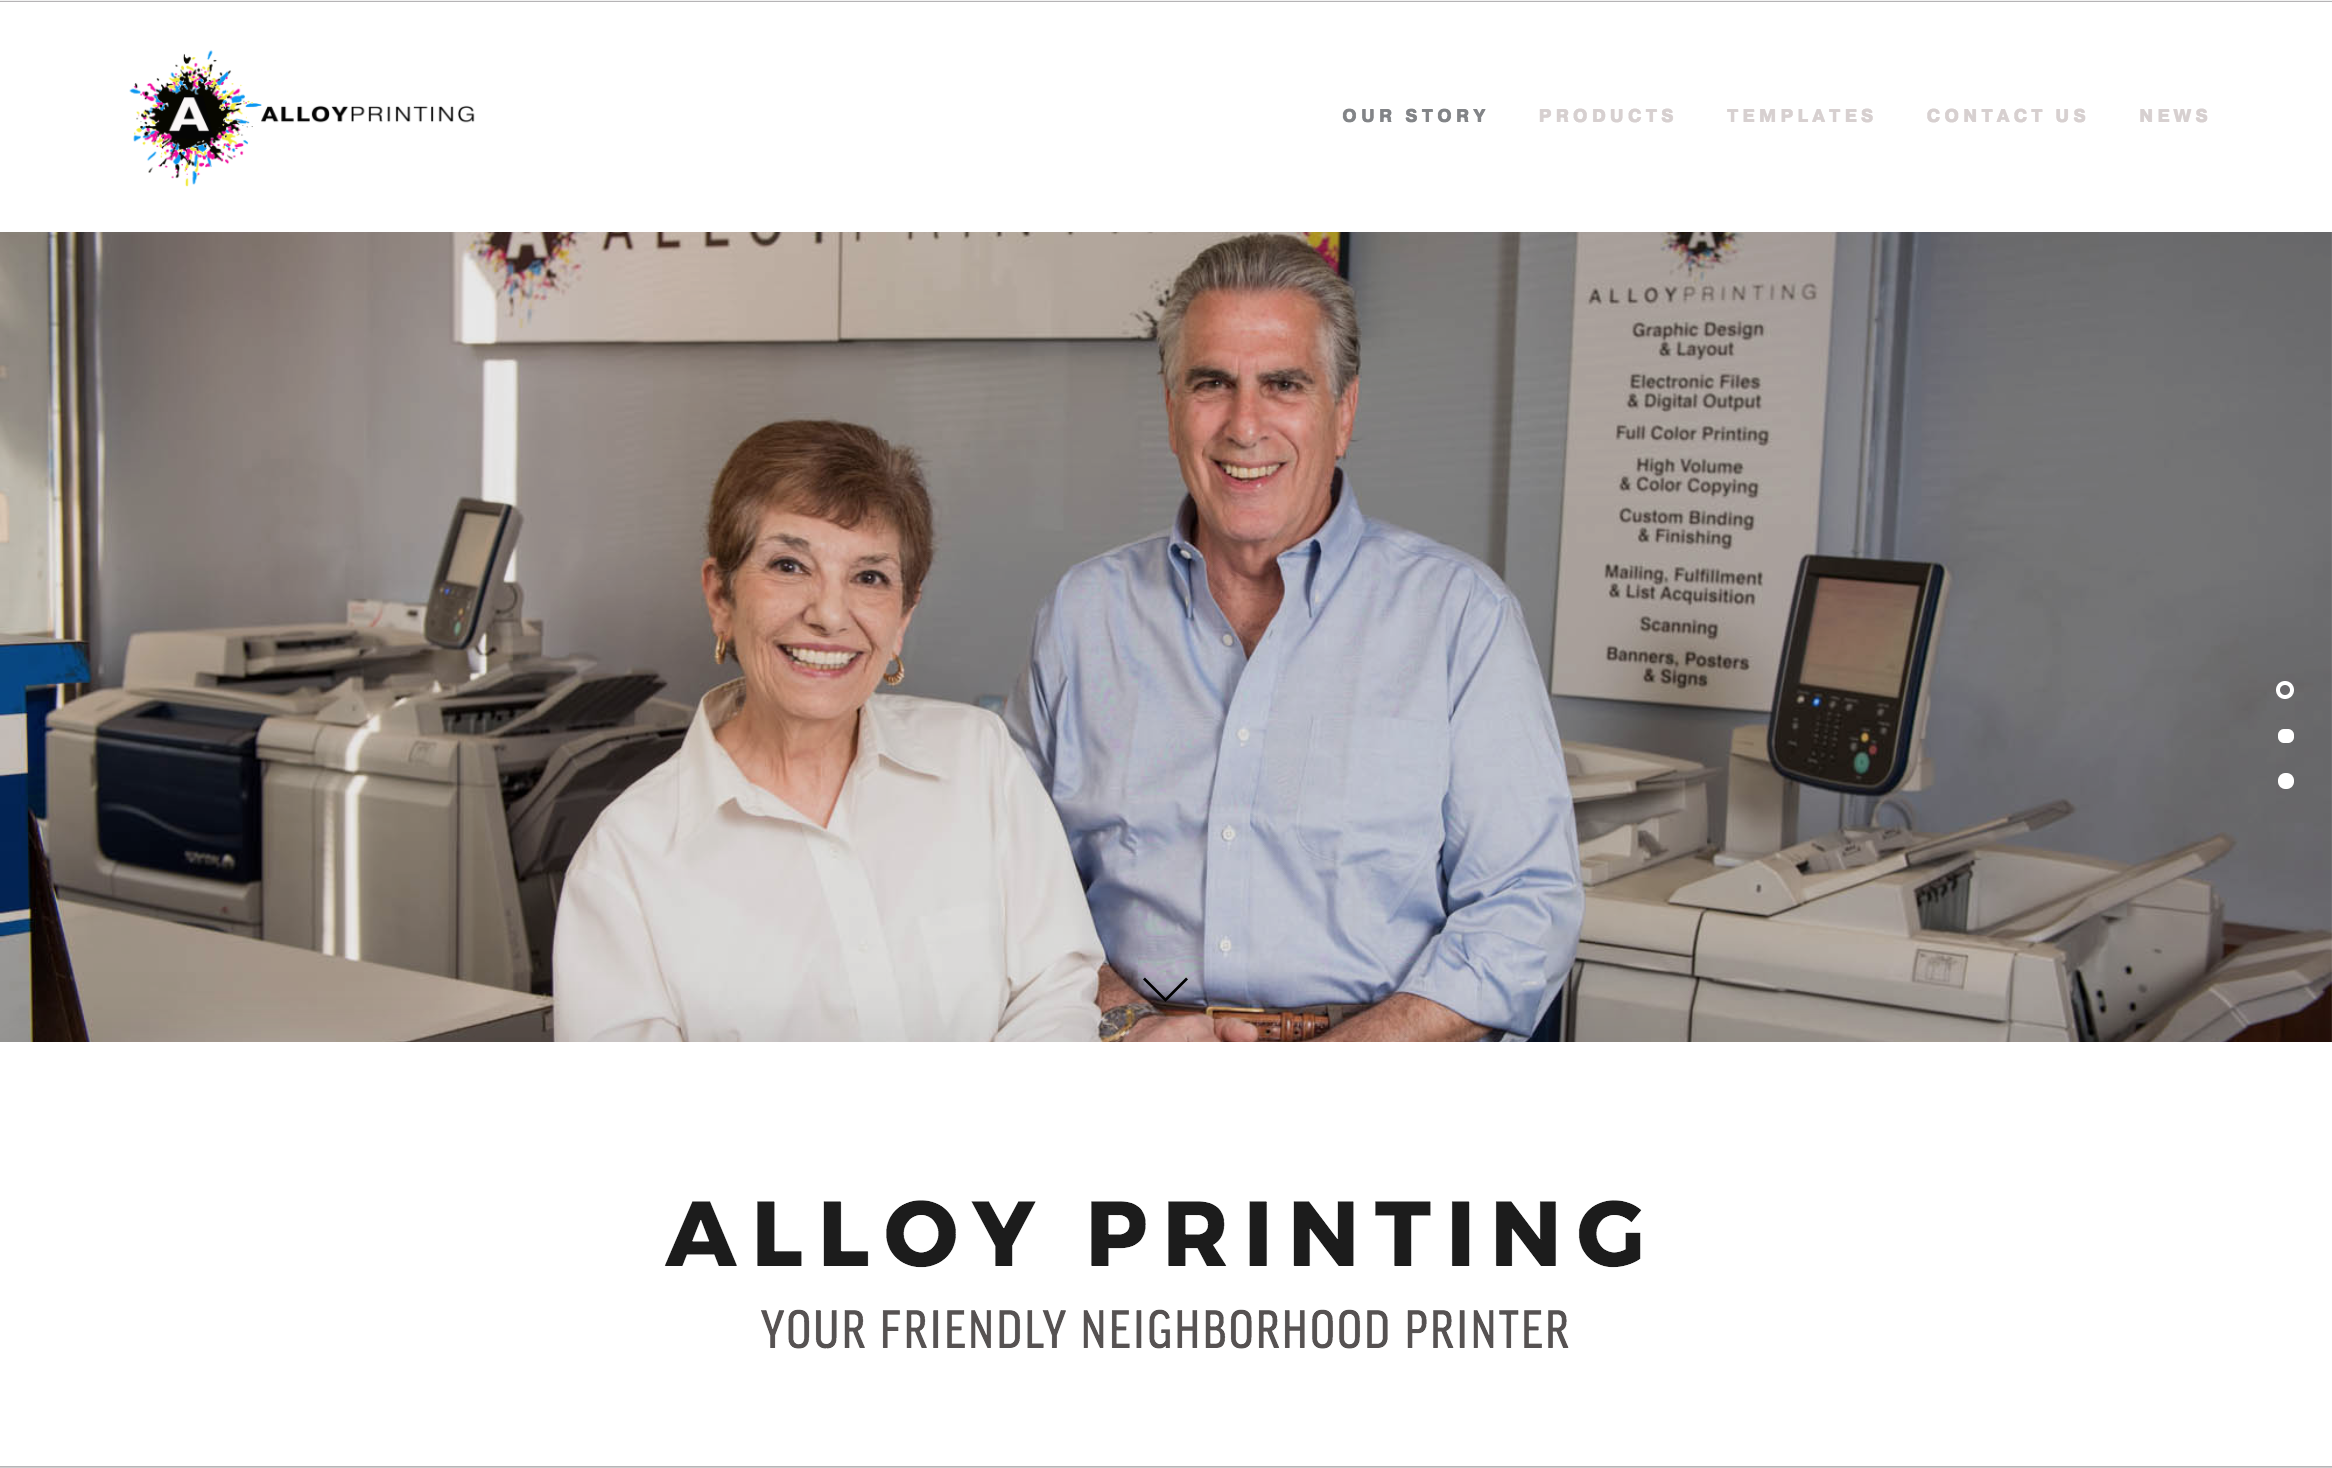 A new brand - Alloy Printing needed a new website when they re-branded after 30 years of successful business.